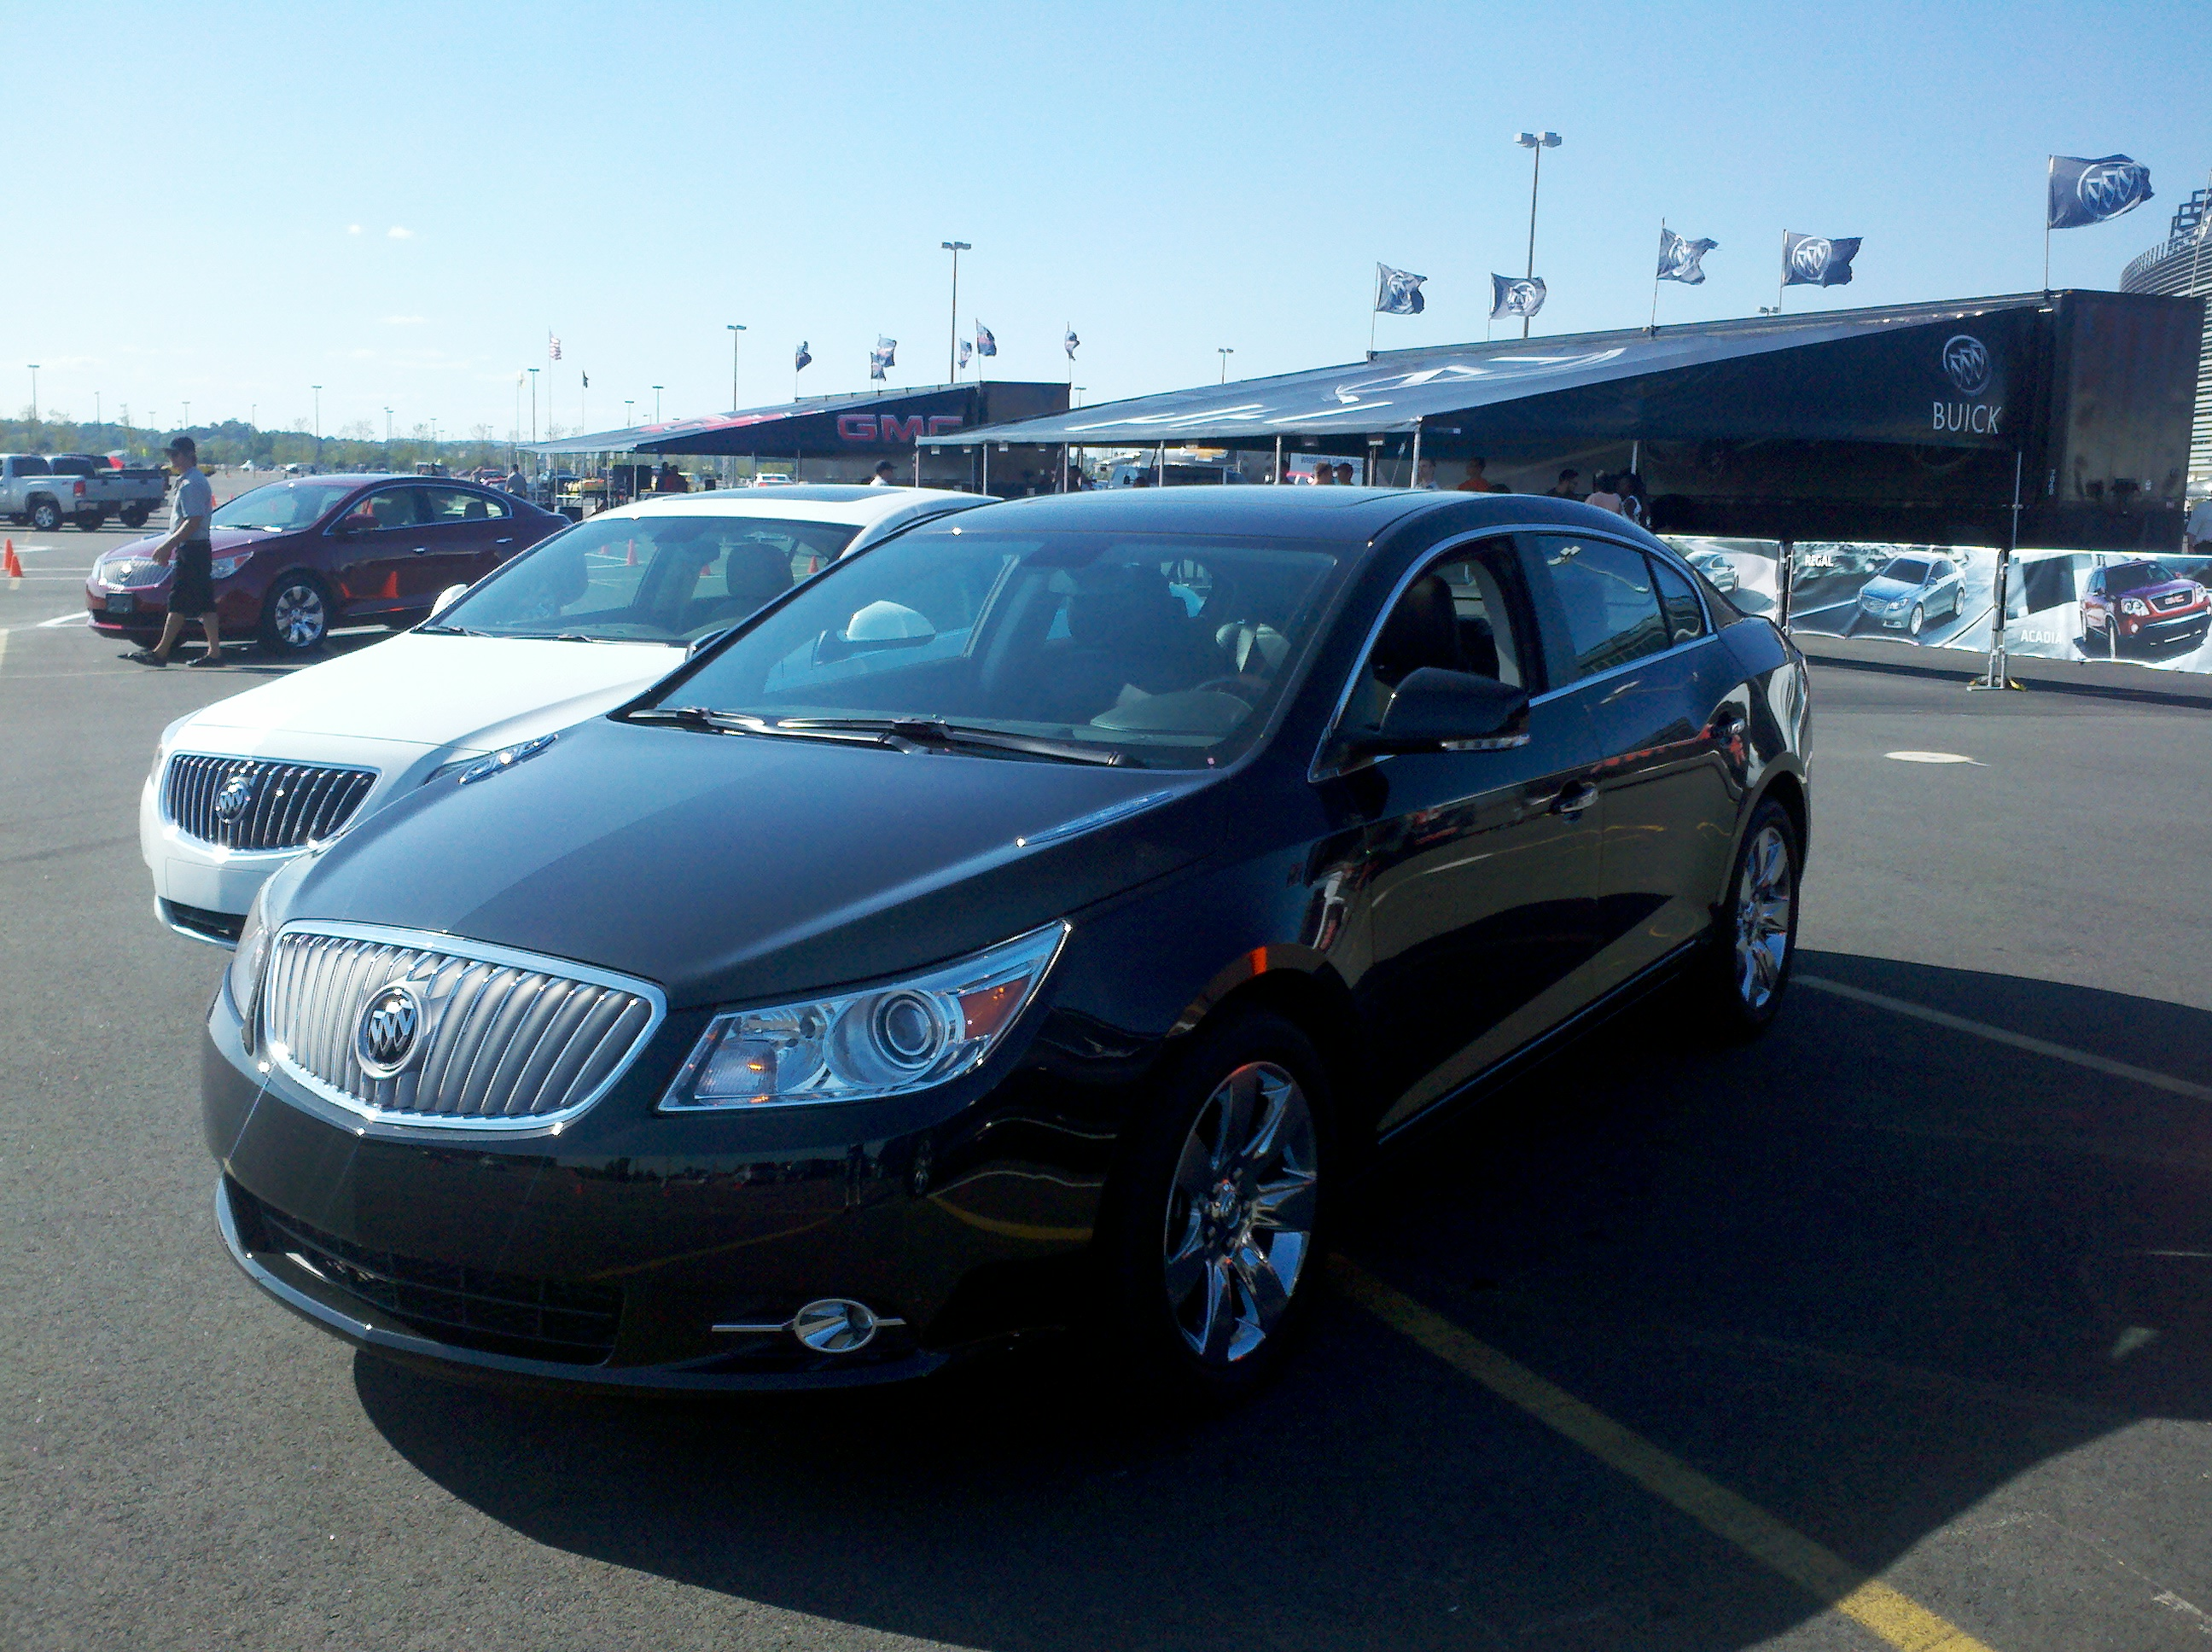 sunroof lacrosse verdigre assist leather hybrid full buick back up premium mi auto heated pwr img